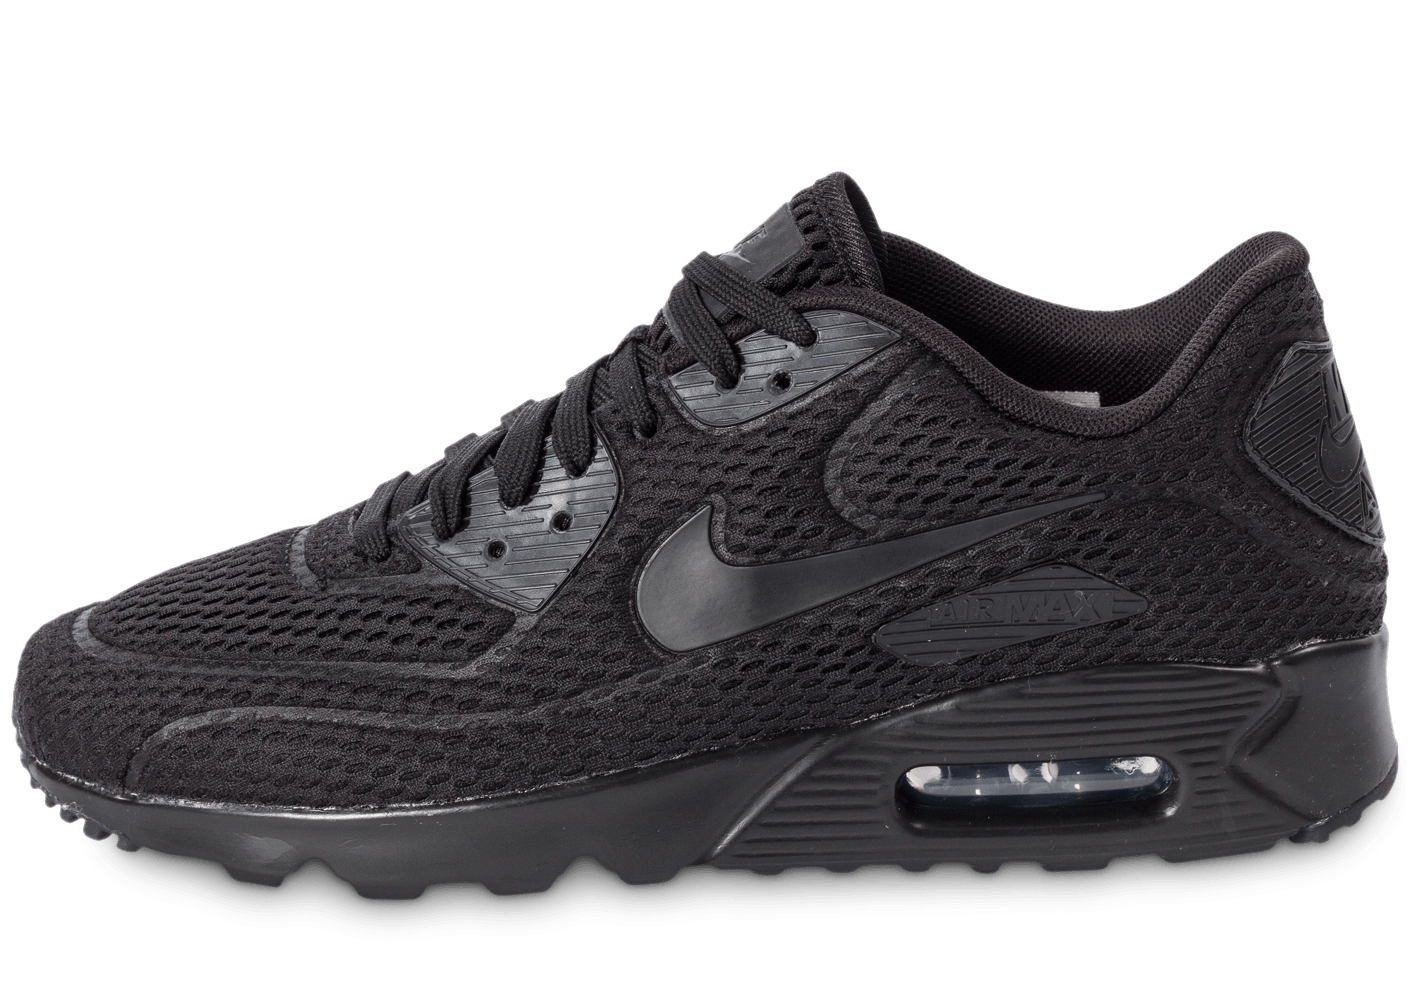 info for 76fca bd245 Nike Air Max 90 Ultra BR noire - Chaussures Baskets homme - Chausport